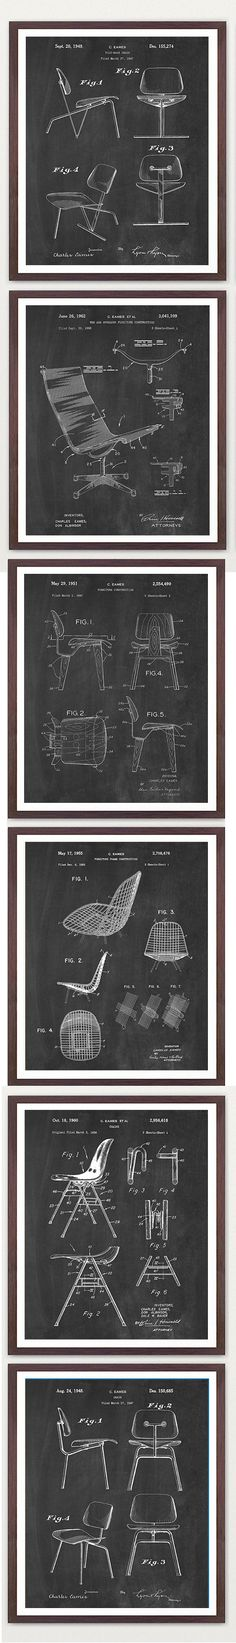 Eames chair patents, U. Chair Design, Furniture Design, Cool Office Desk, Interior Design History, Contemporary Couches, Presentation Layout, Charles & Ray Eames, Swinging Chair, Patent Office